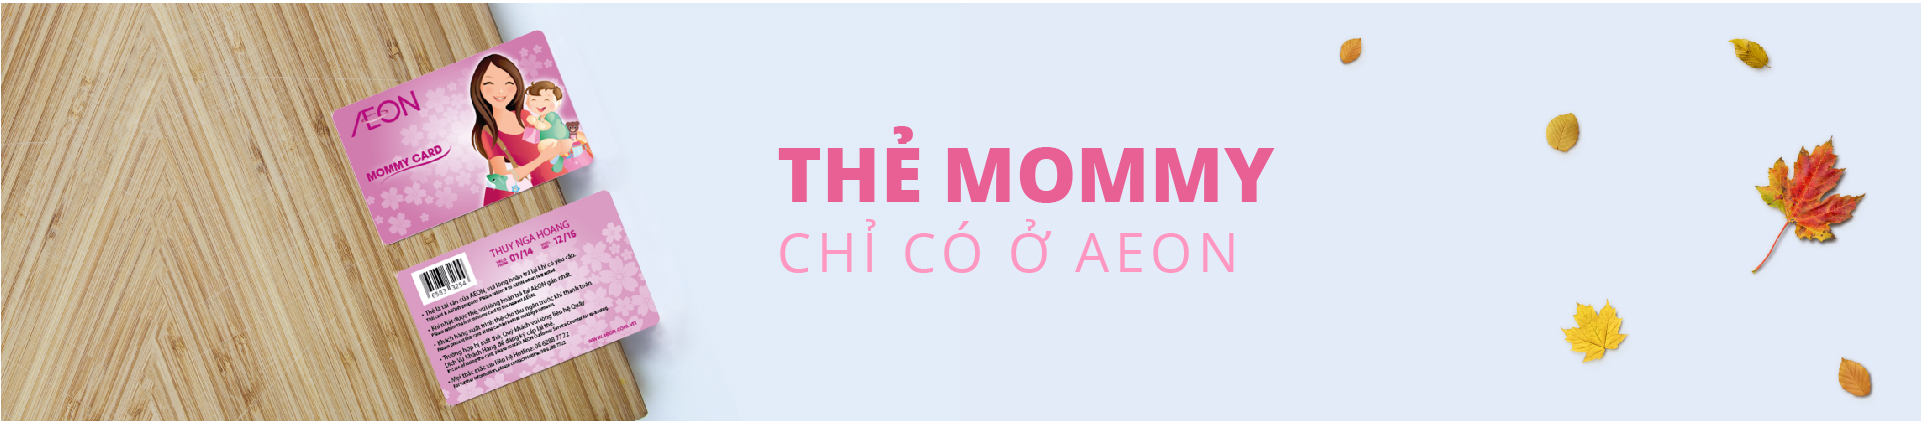 the mommy chi co o AEON